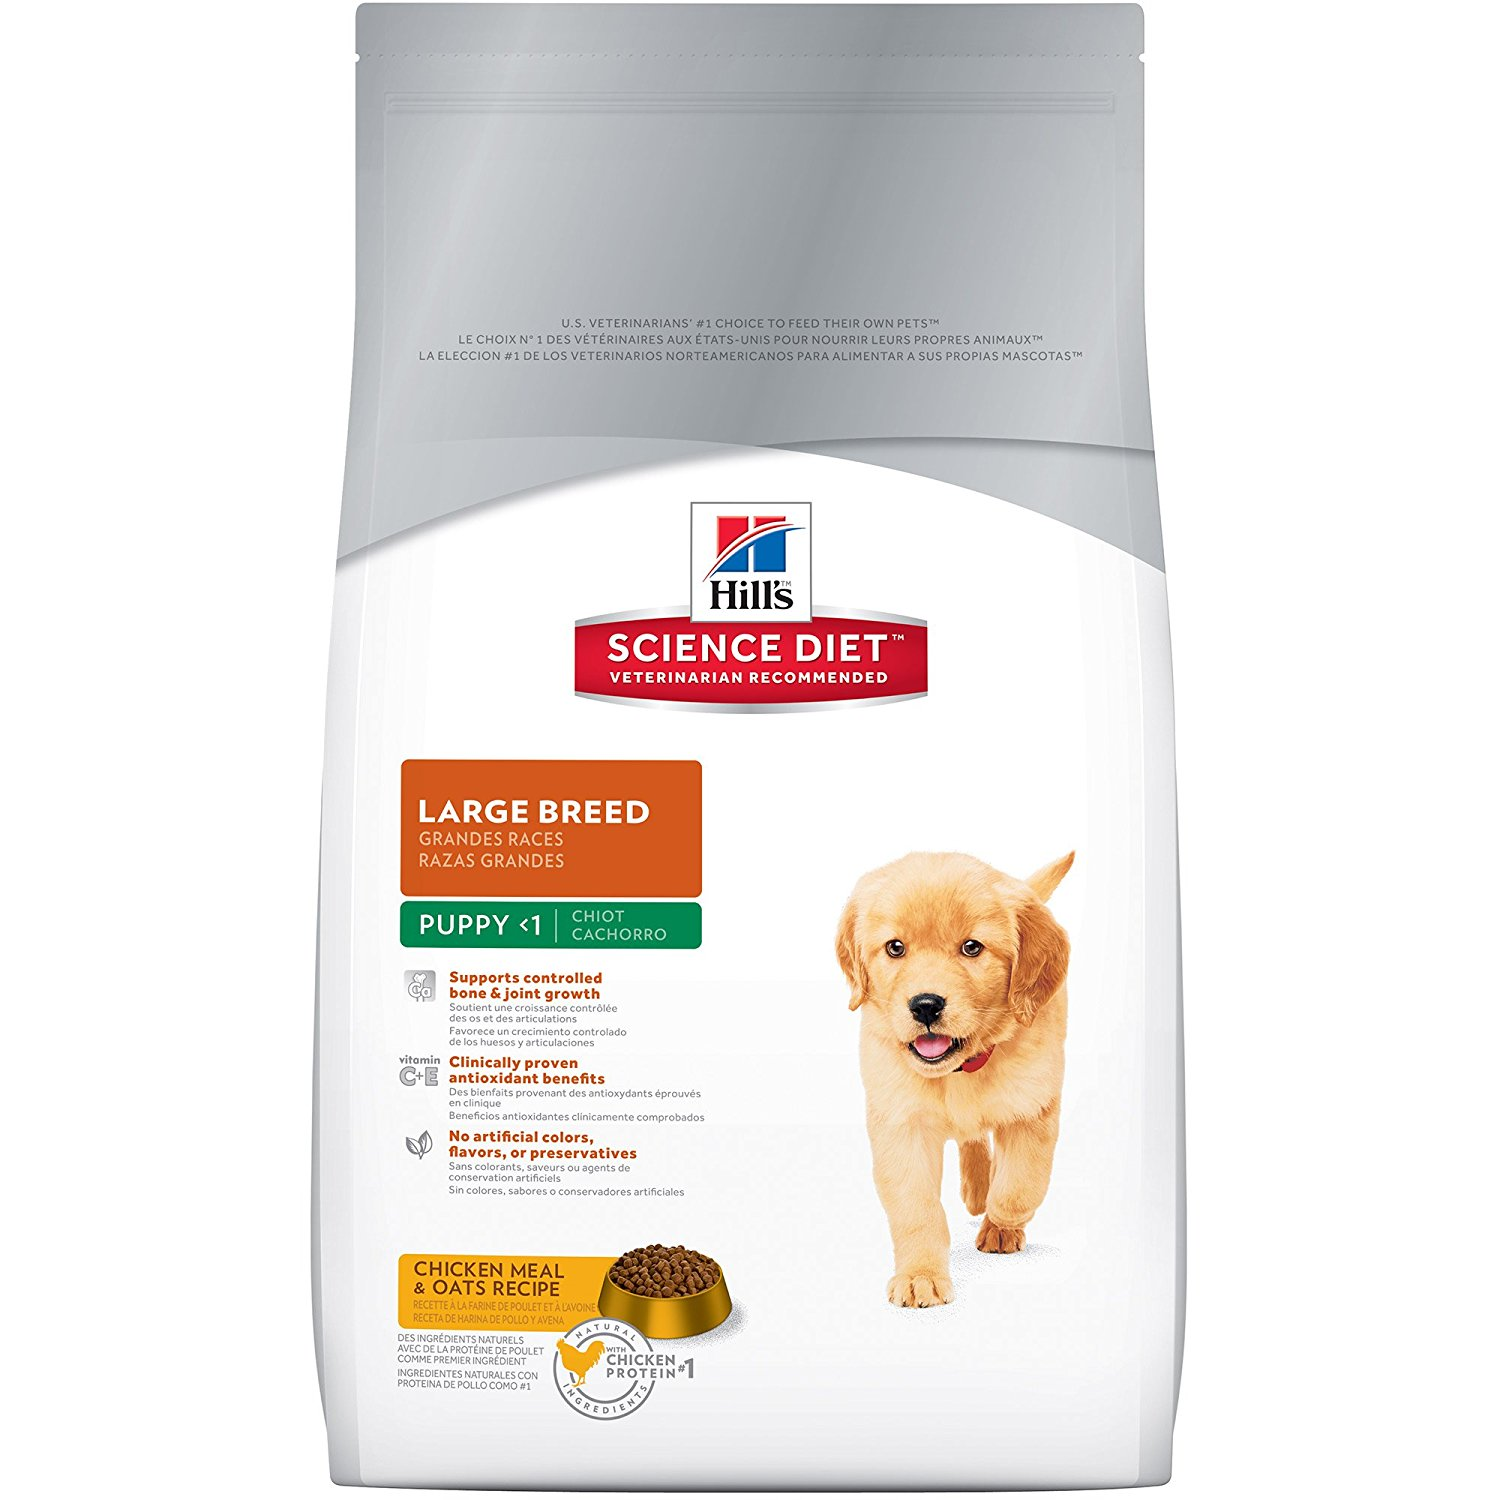 Hills Science Diet Puppy Large Breed Chicken Meal Oats Recipe Dry